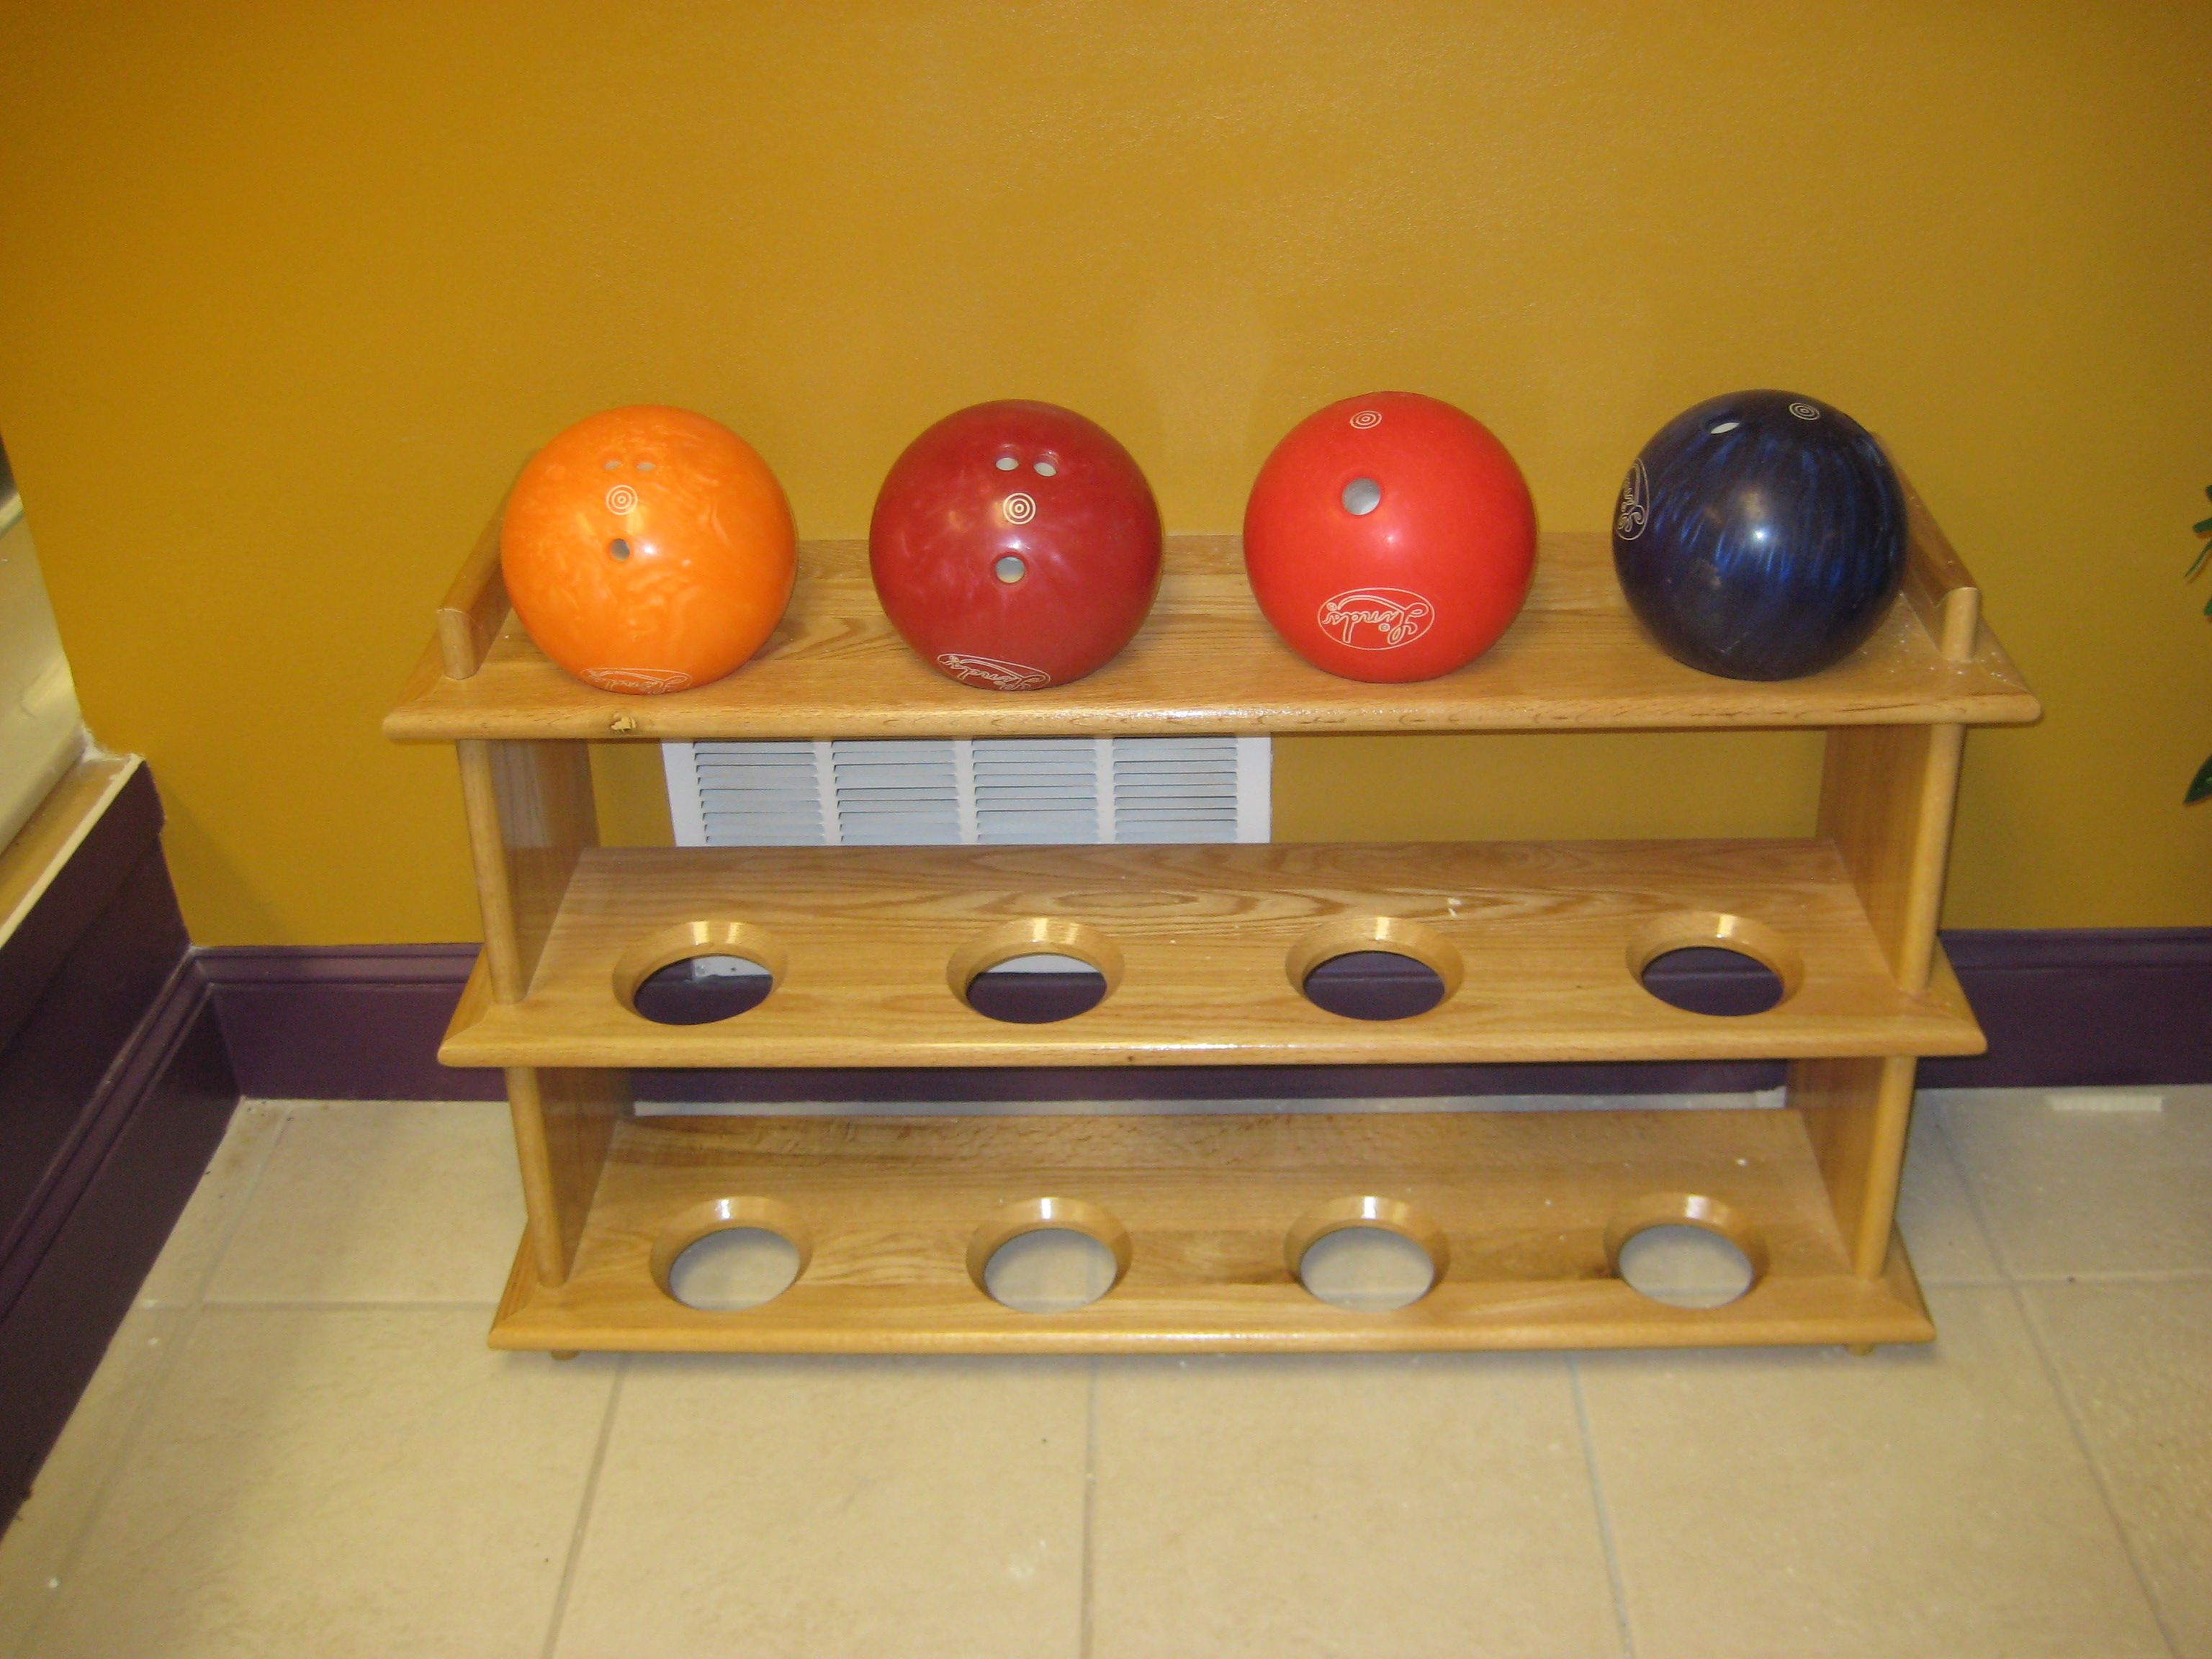 81 best bowling images on pinterest bowling ball art bowling